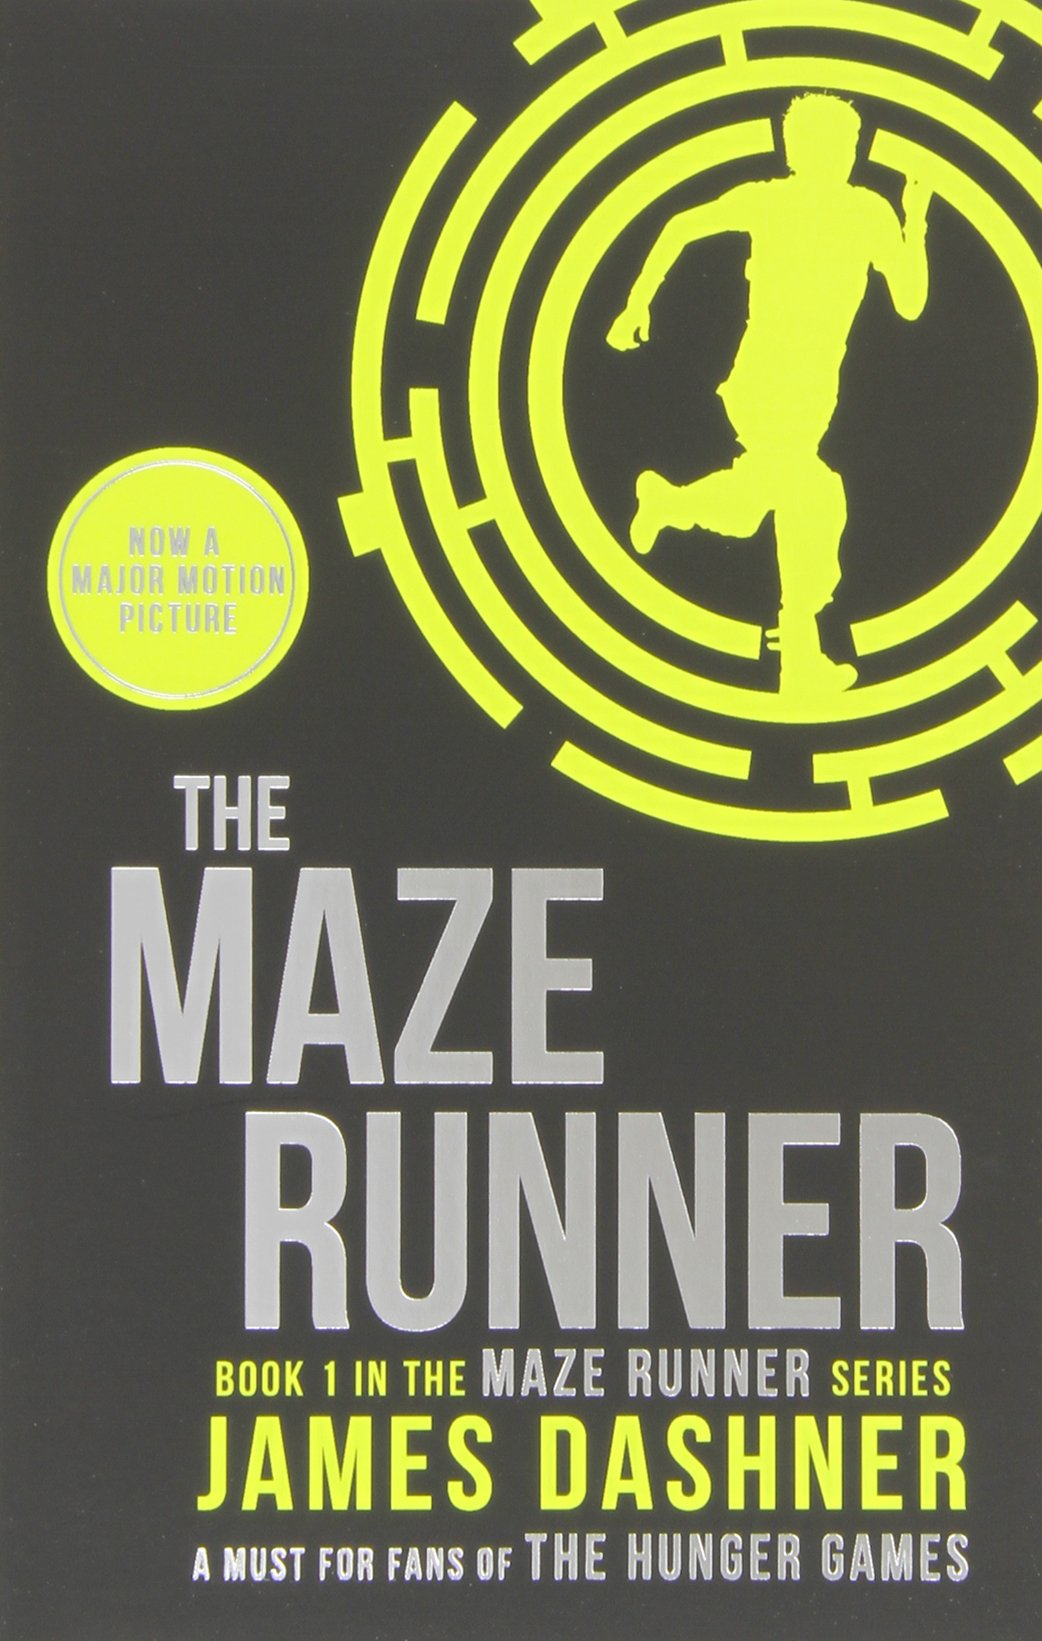 The Maze Runner Book